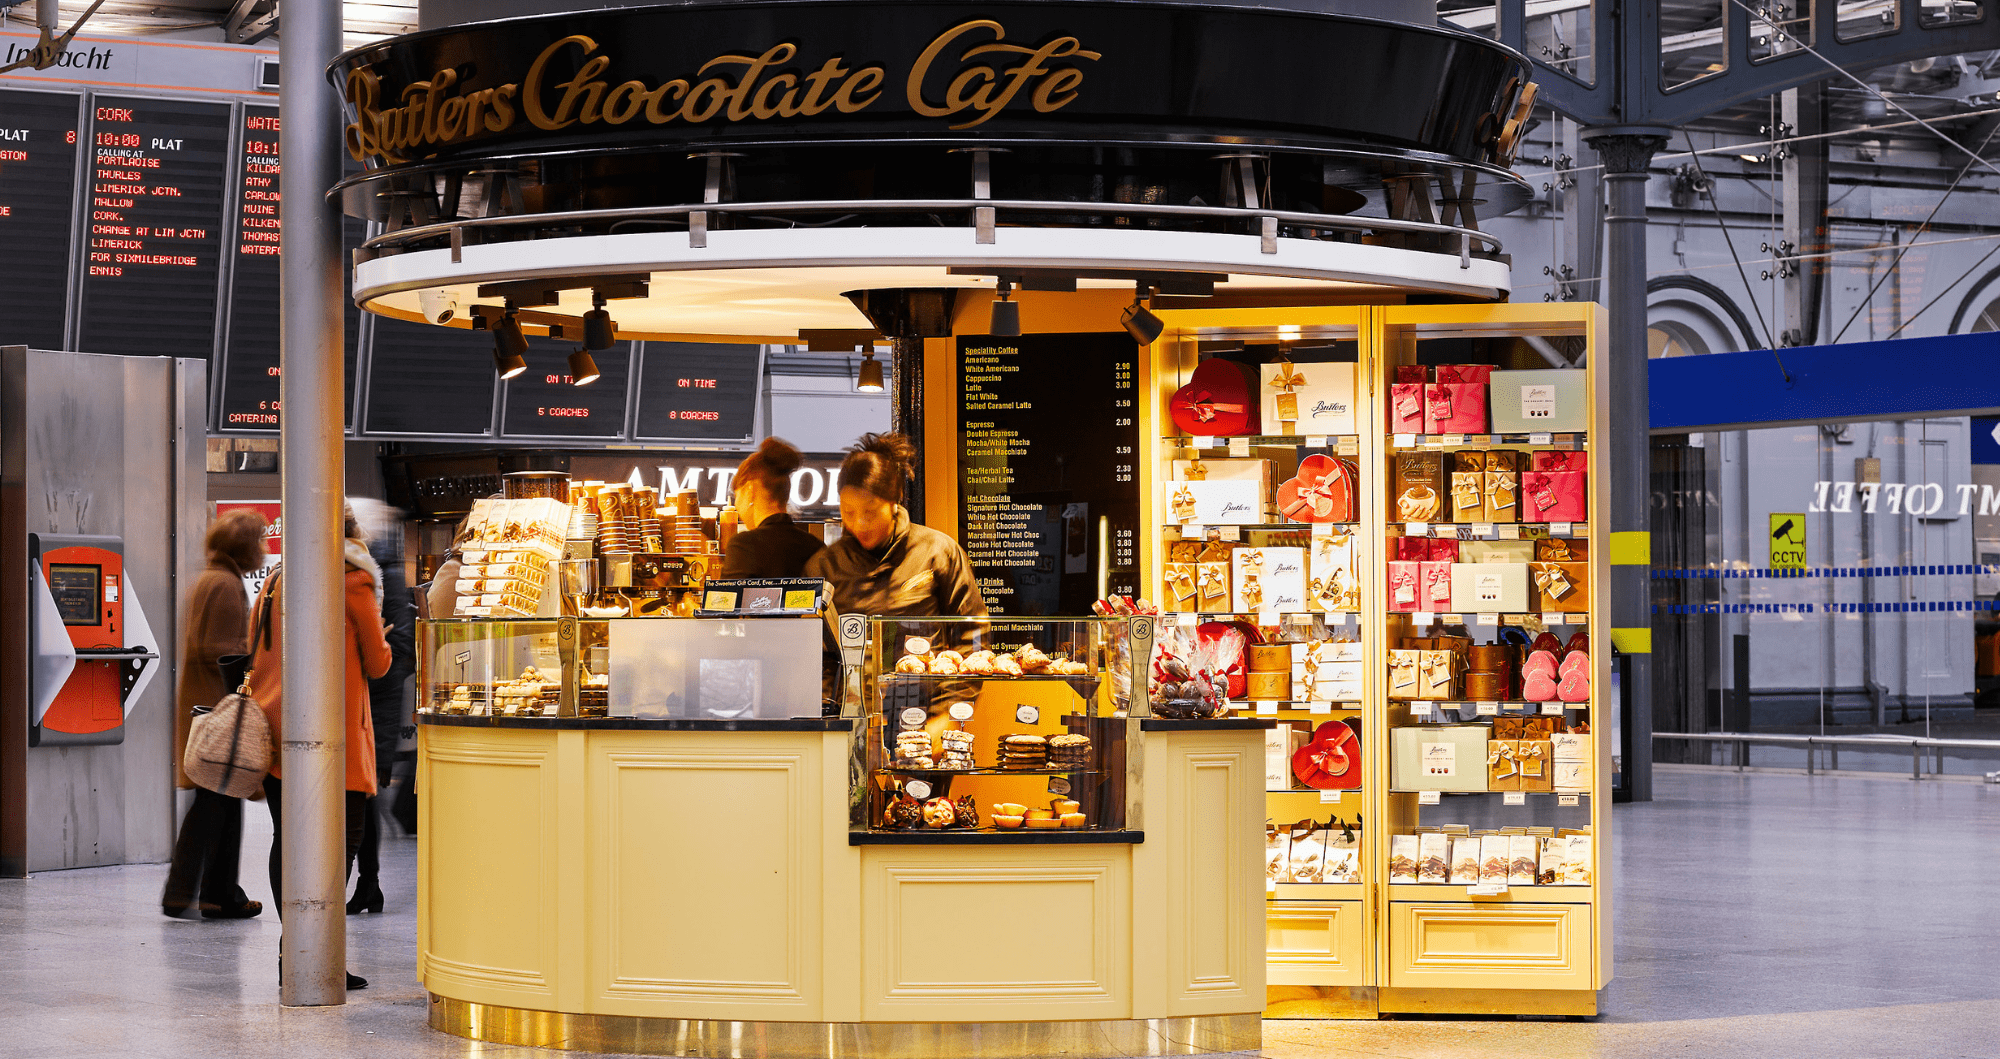 Butlers Chocolate Café, Heuston Station